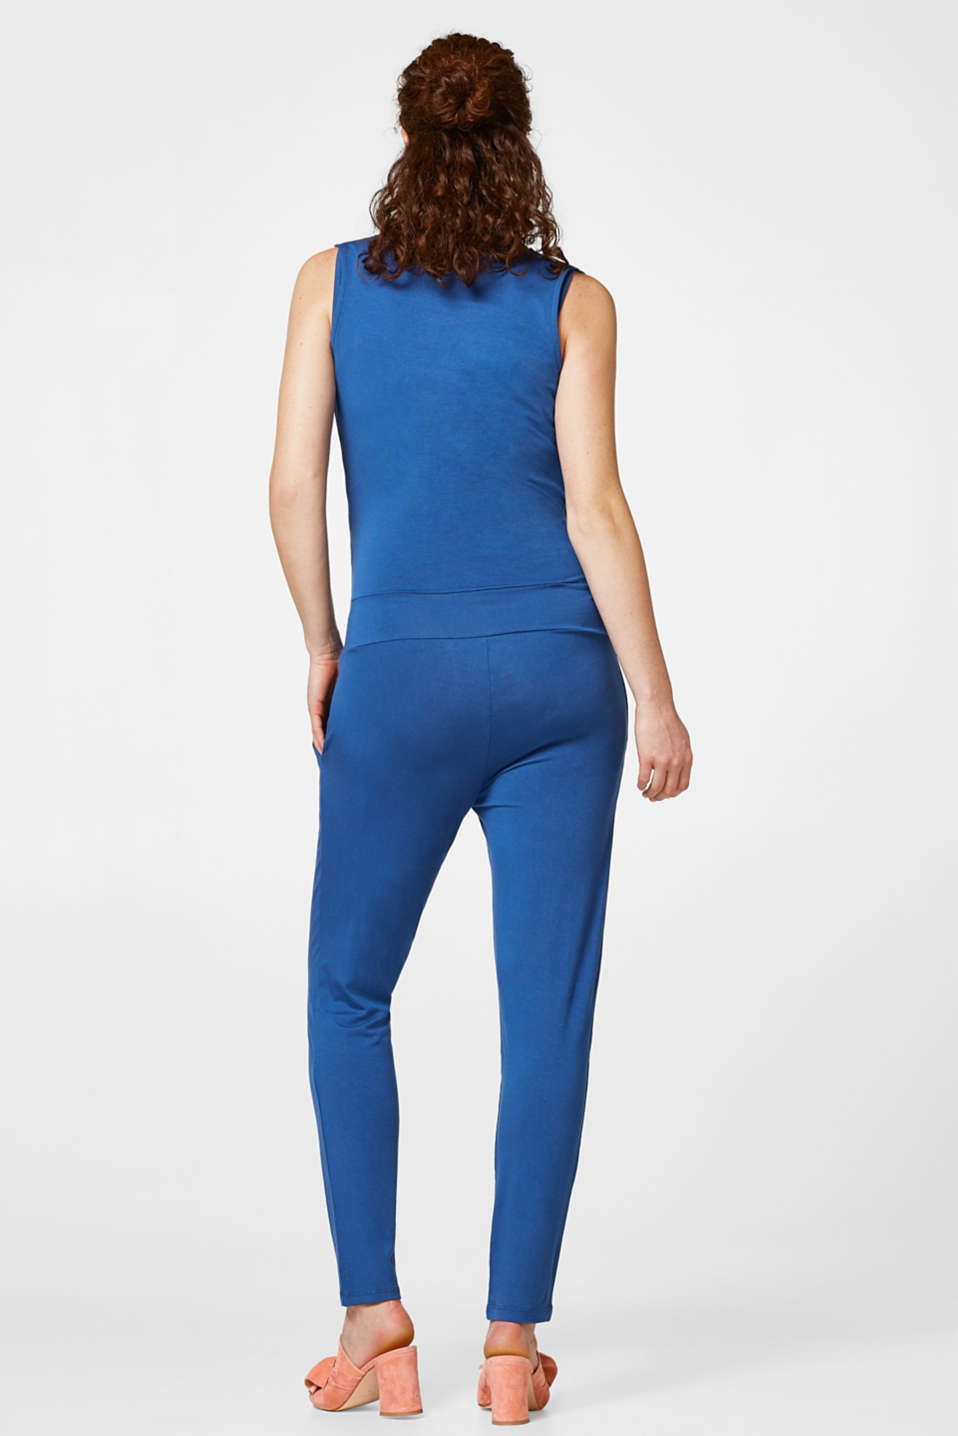 Stretch jersey jumpsuit for nursing